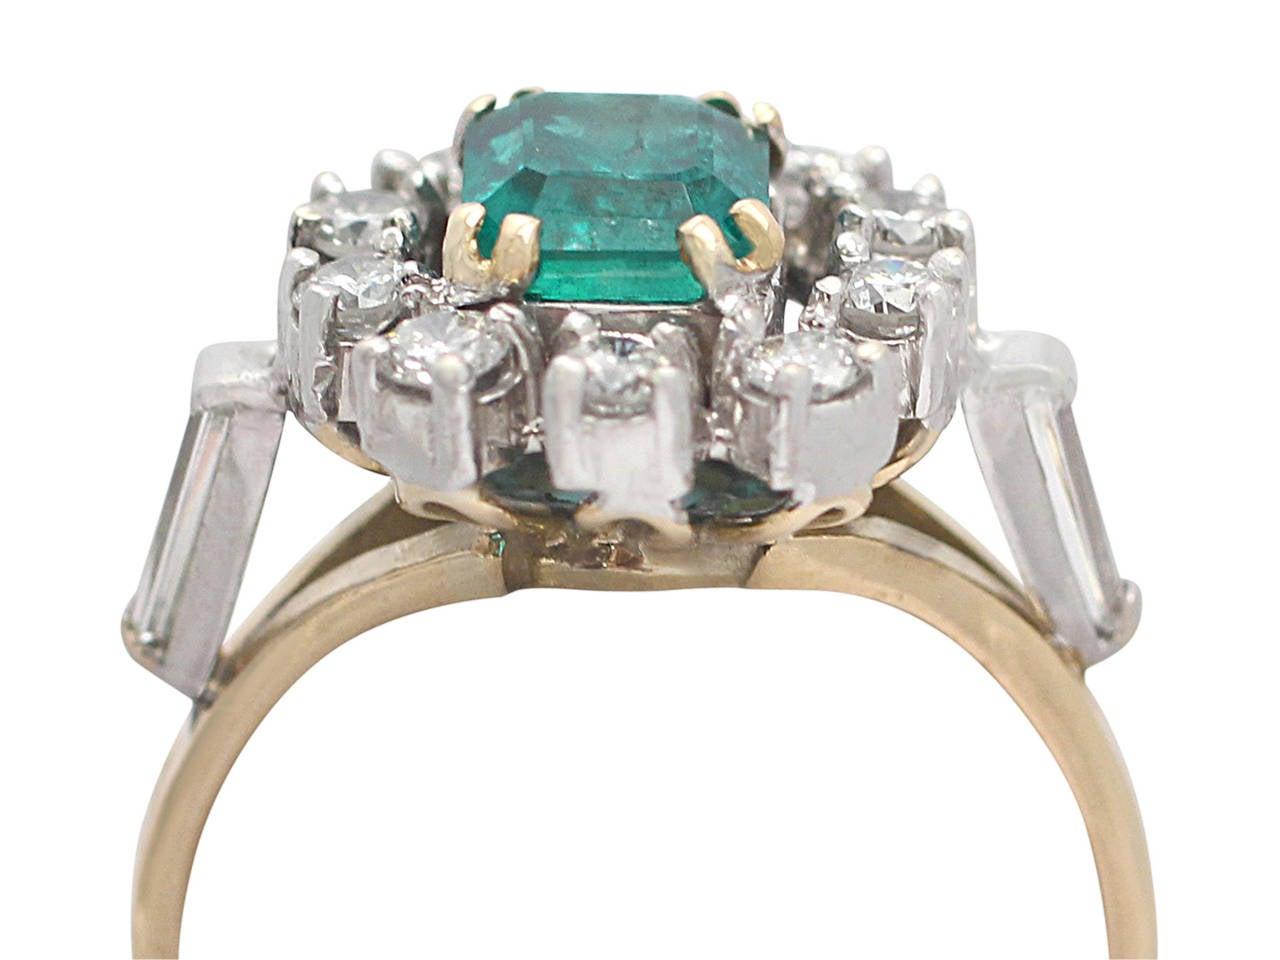 A fine and impressive vintage 0.84 carat natural emerald and 0.50 carat diamond, 18 karat yellow gold cluster ring; part of our vintage jewelry and estate jewelry collections  This impressive vintage cluster ring has been crafted in 18k yellow gold